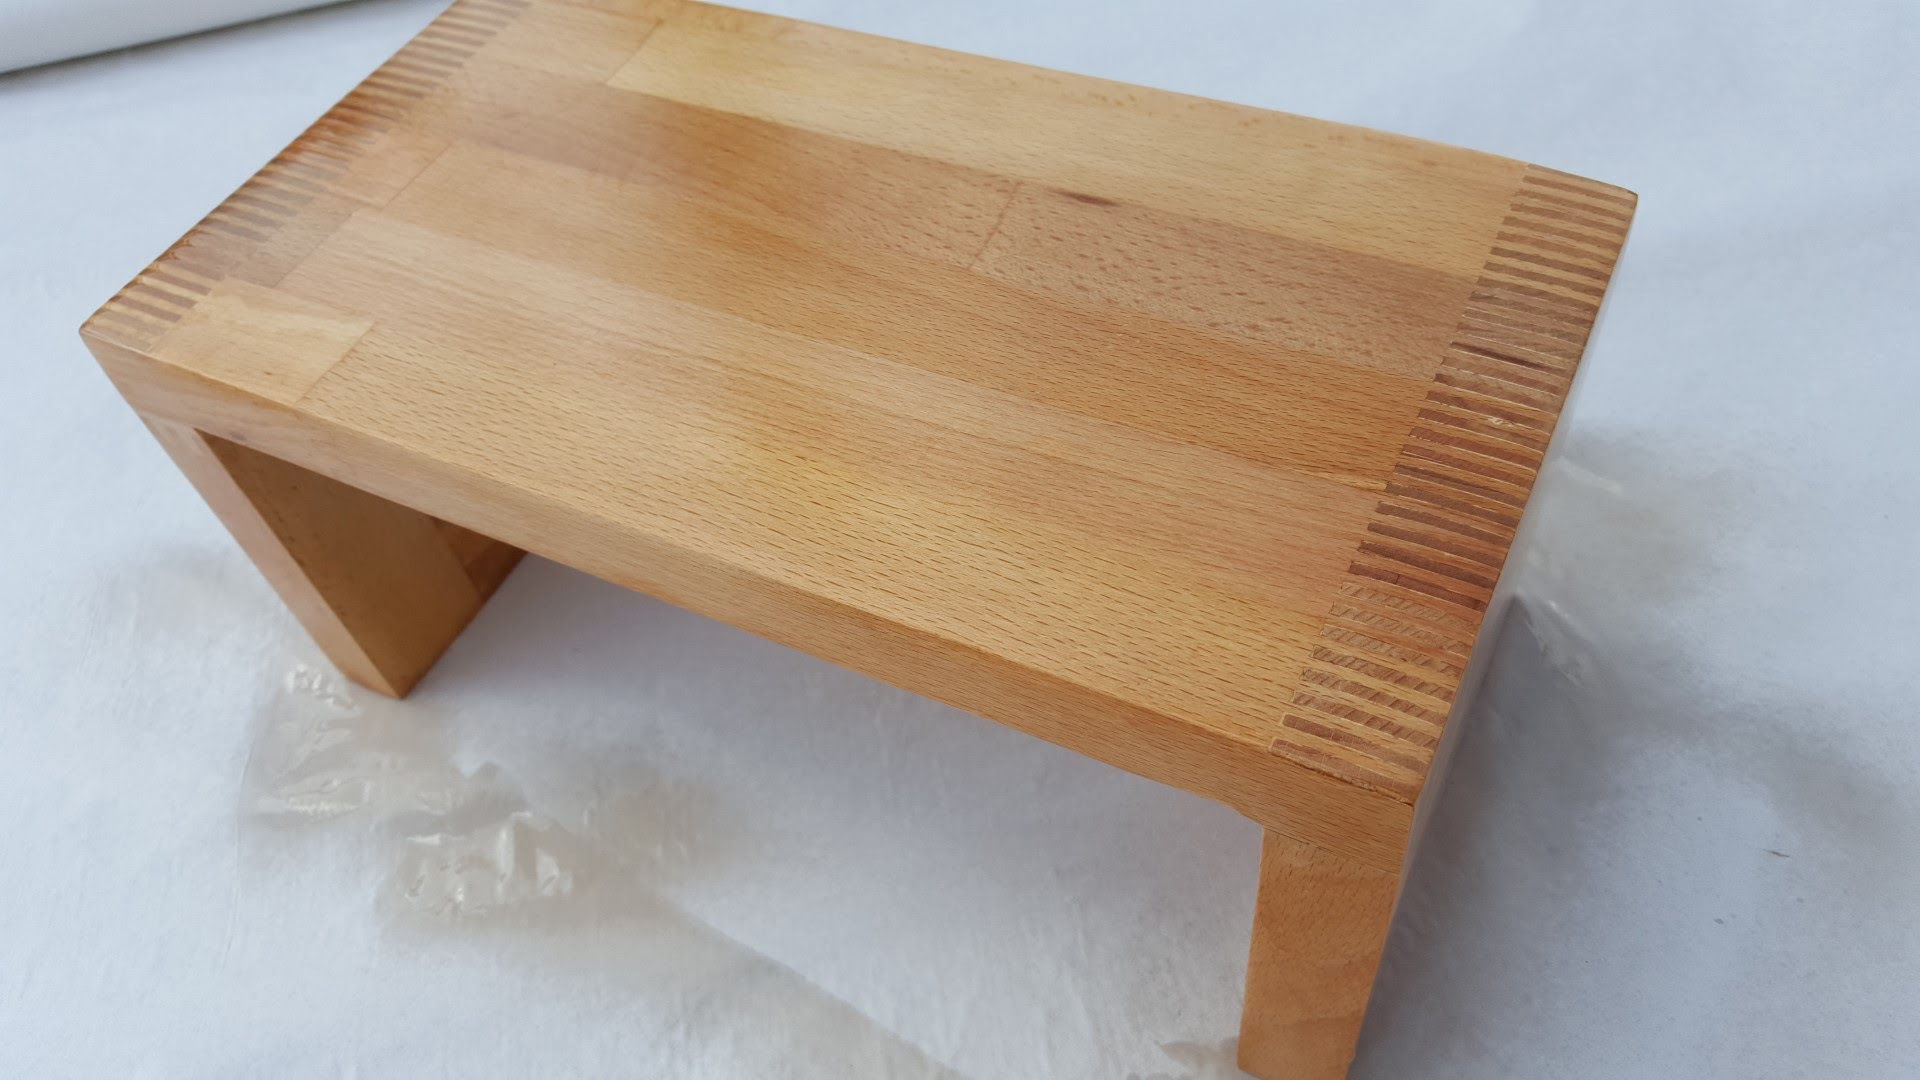 wooden step stool making a wood step-stool - youtube YQEKTHV